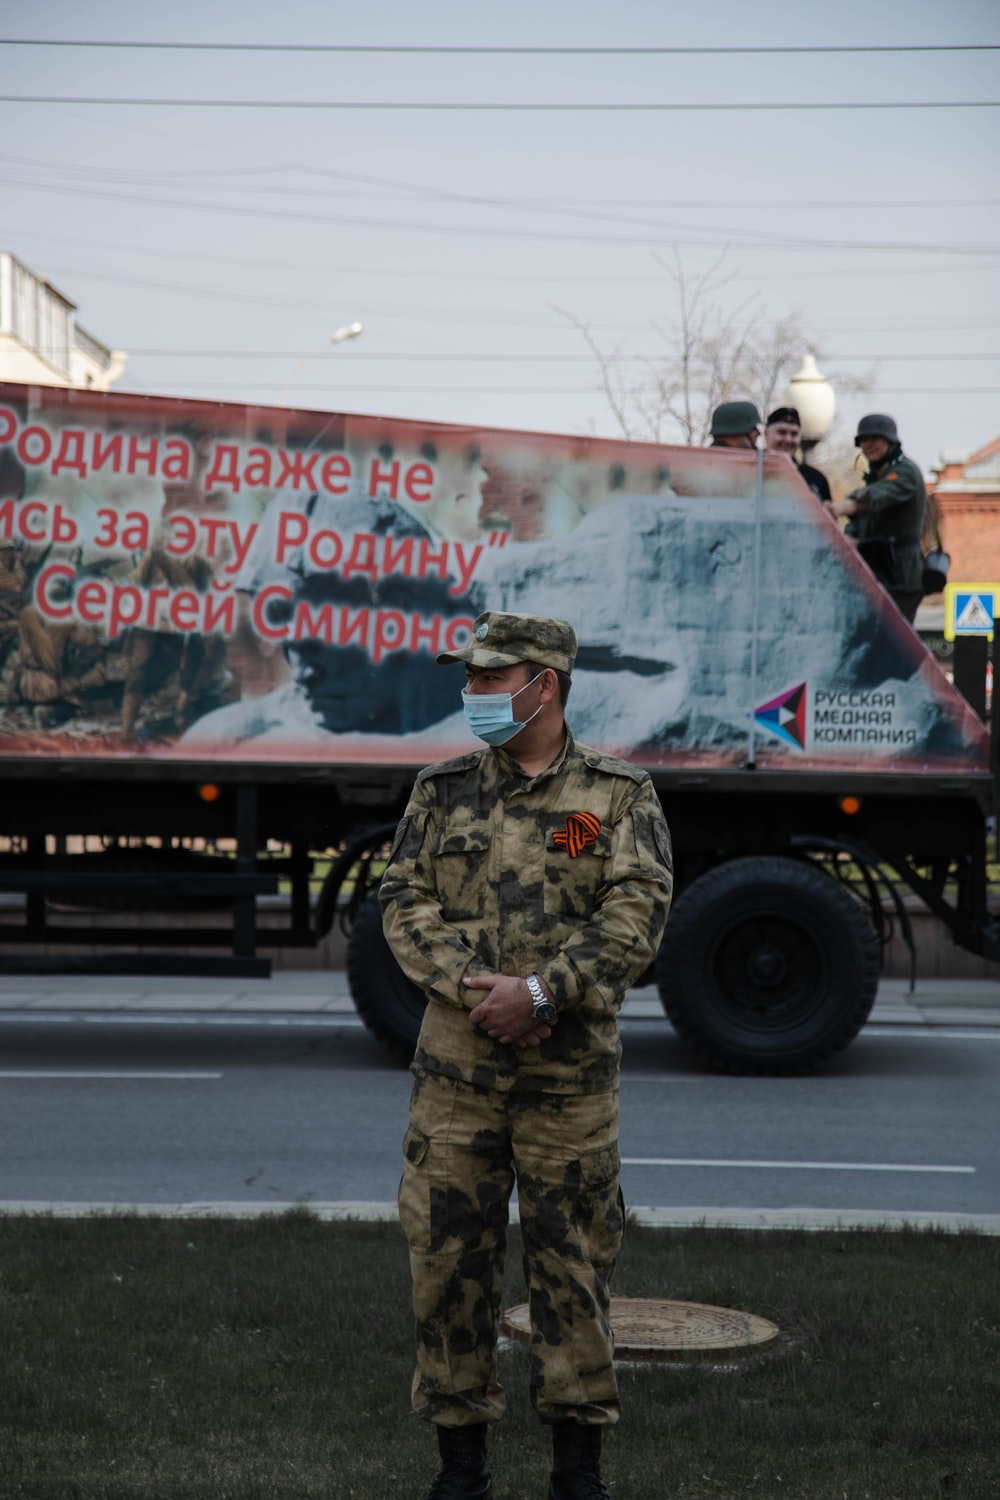 man in green and brown camouflage uniform standing near black truck during daytime